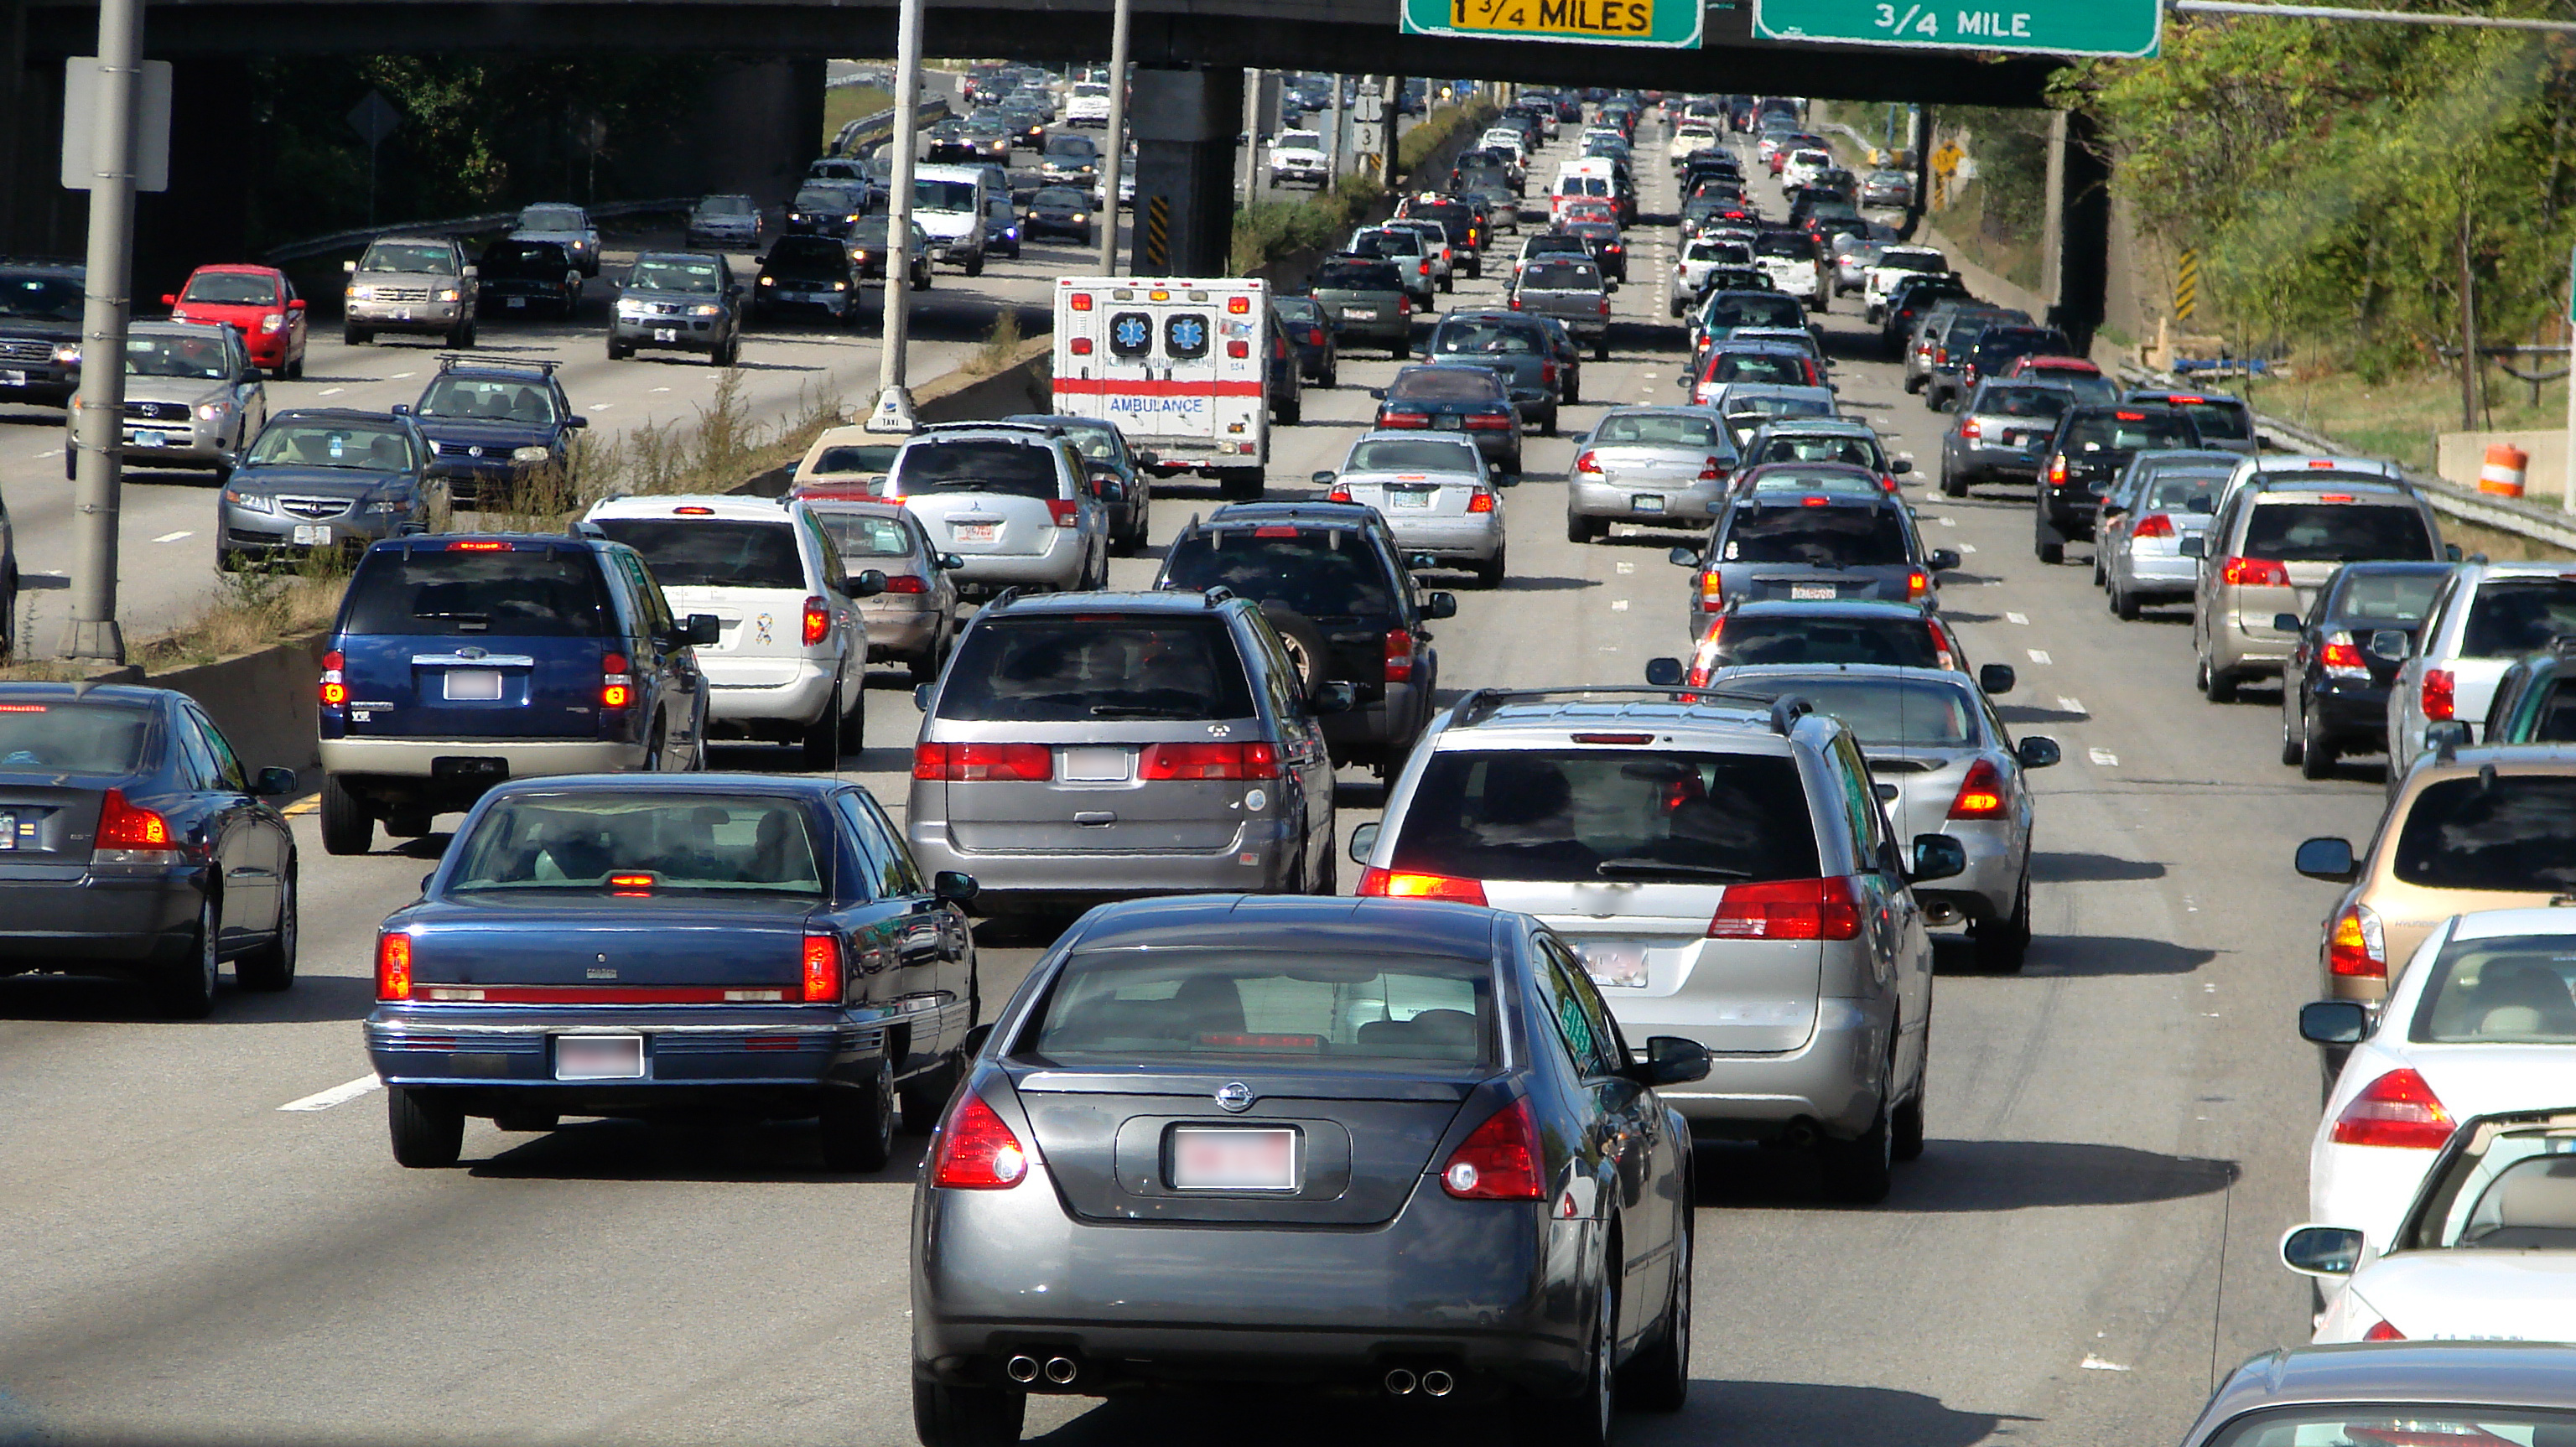 A new study has calculated the daily dose of benzene and formaldehyde in cars that is being inhaled by drivers.